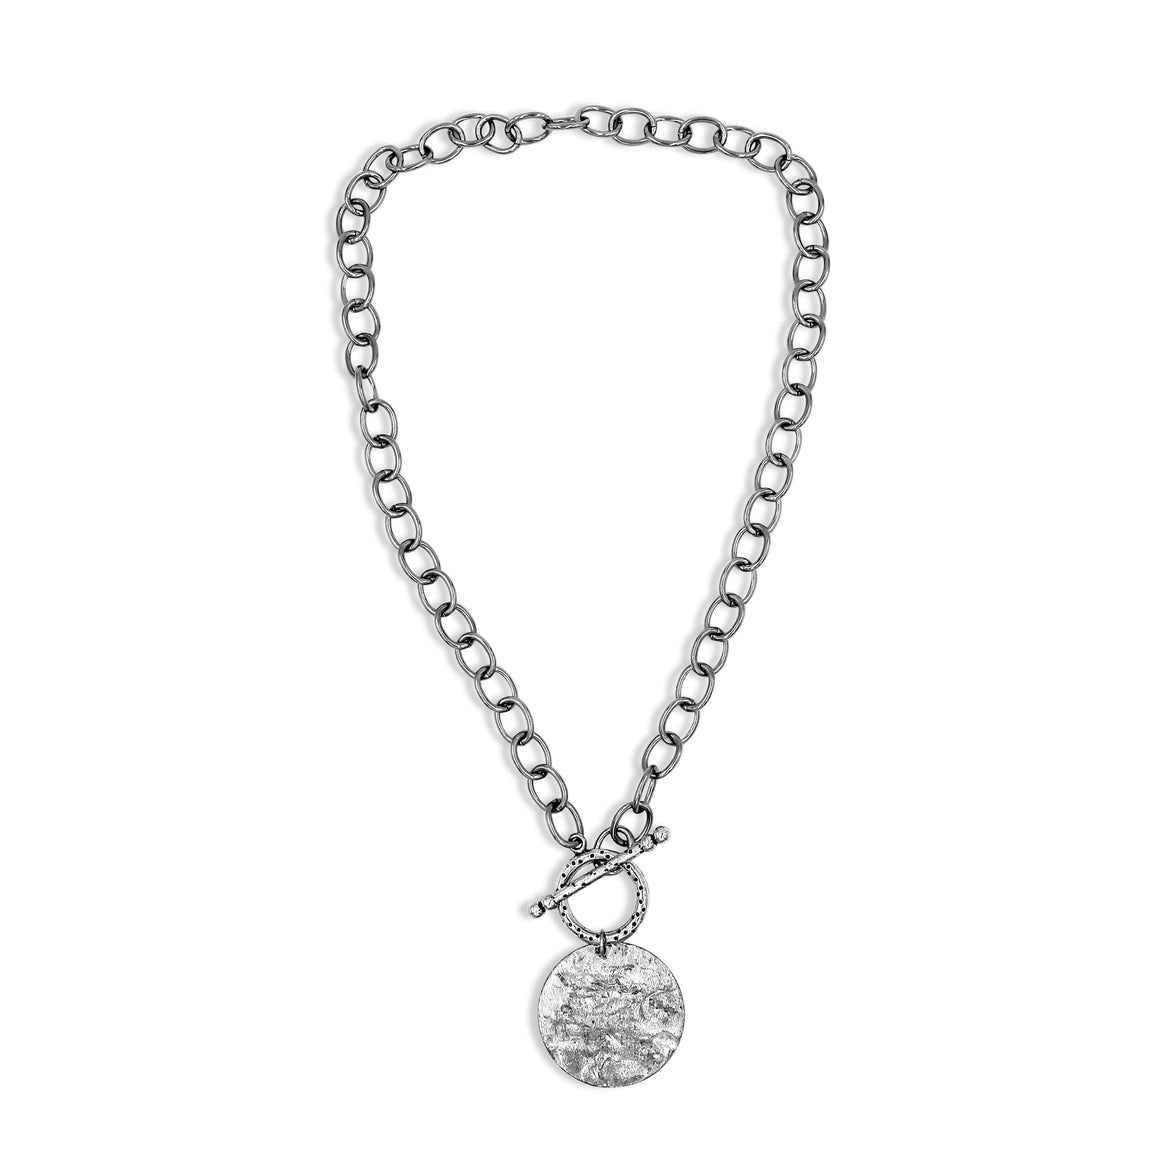 Silver Statement Necklace With Front Toggle Clasp